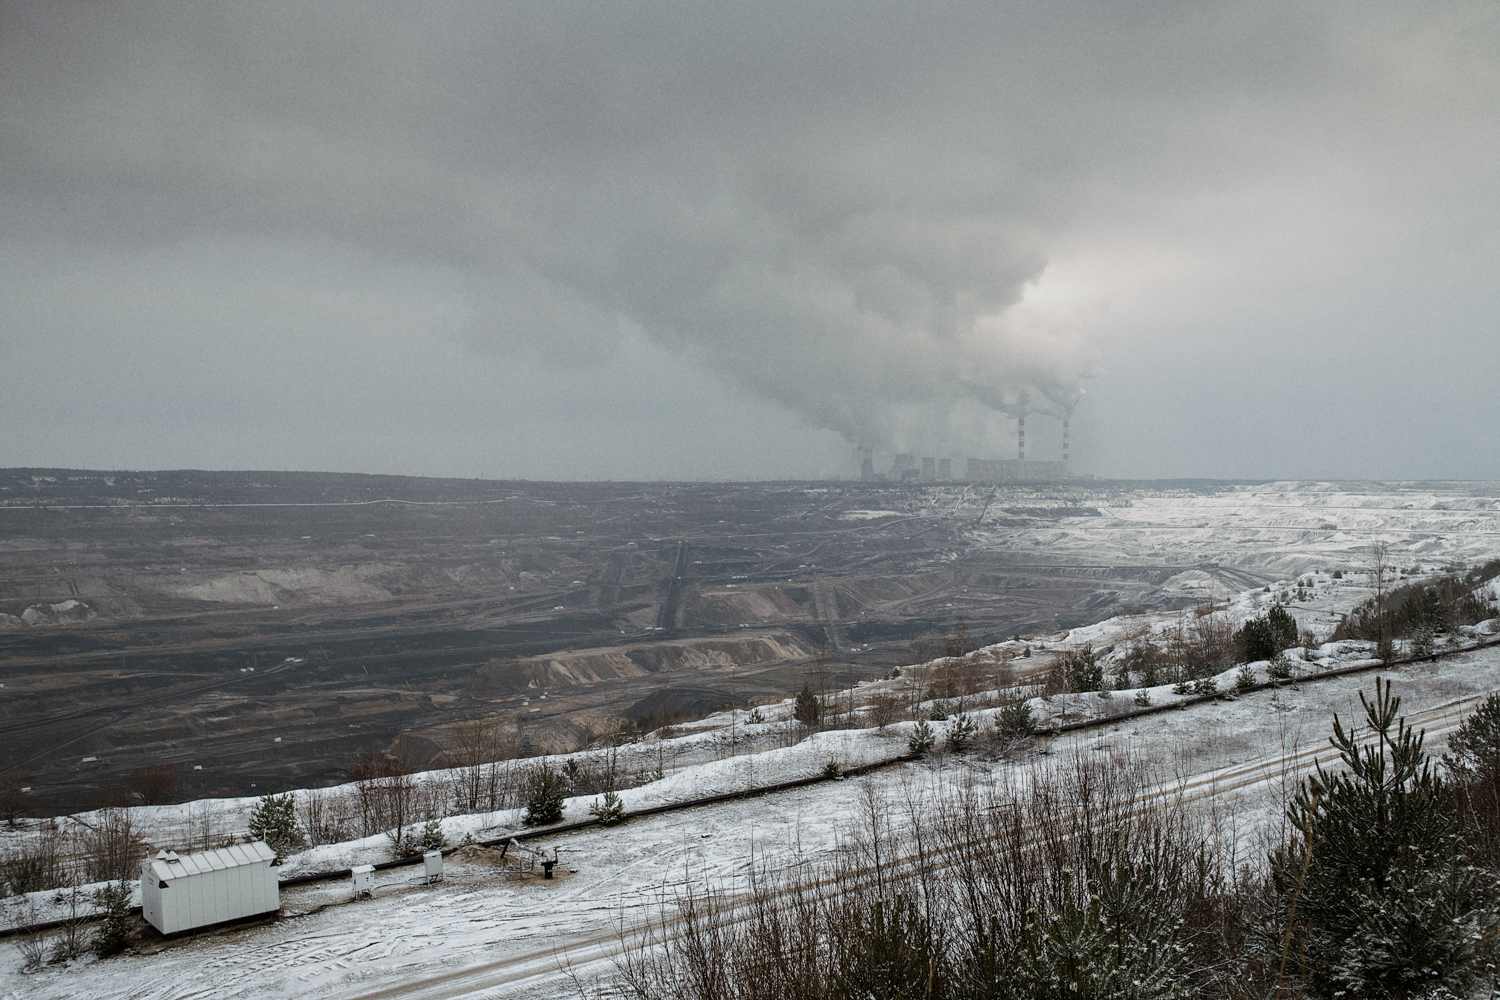 Bełchatów coal mine is the largest opencast coal reserve in Poland. The neighbouring power station is the largest coal-fired power plant in Europe and provides 20% of Poland's energy. With an annual CO2 emission of about 38 million tonnes, the European Commission ranked Bełchatów Power Station the most climate-damaging power plant in the European Union.